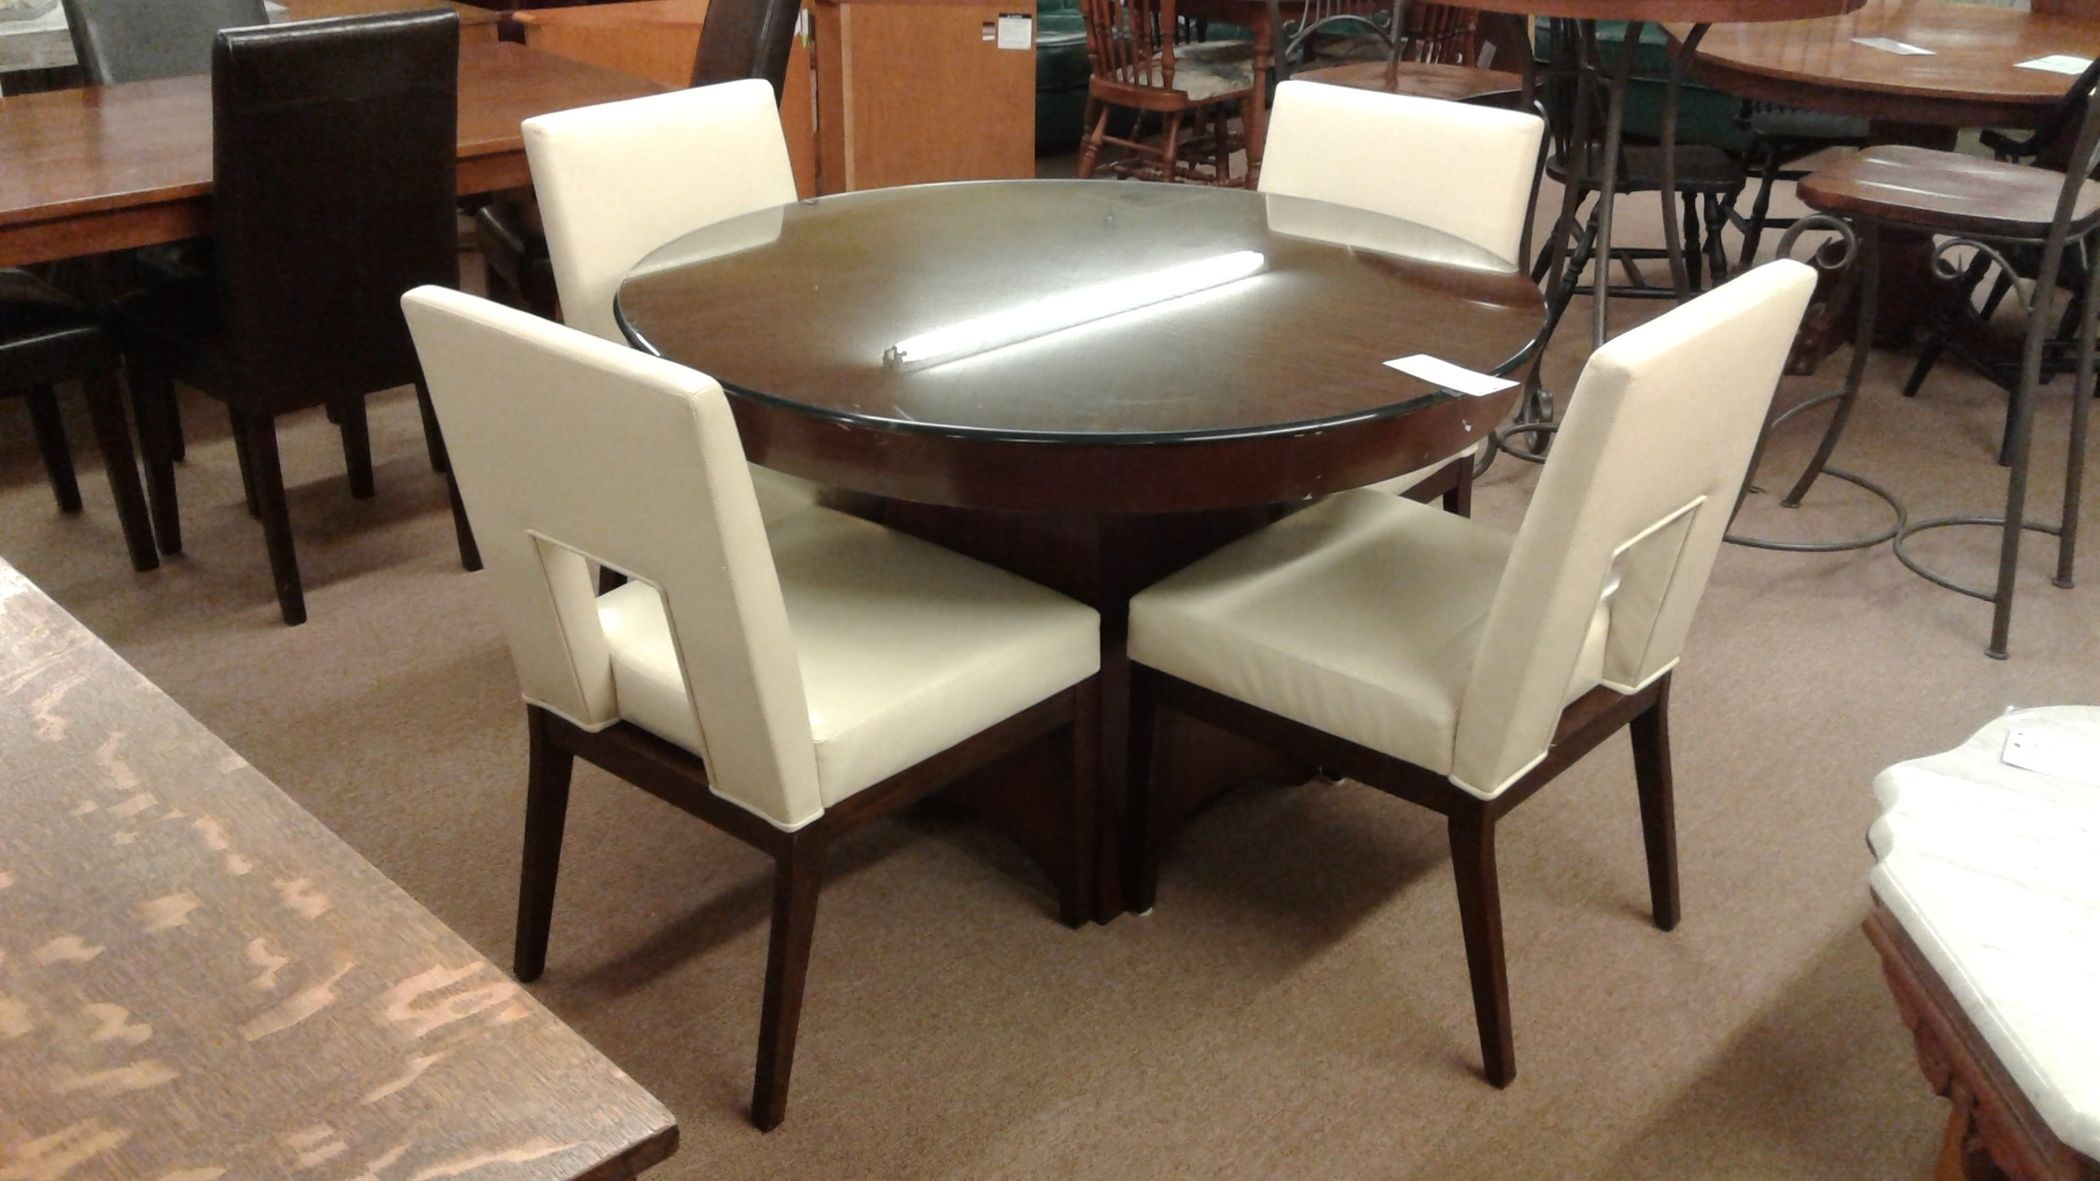 Pier One Dining Table 4 Chairs Delmarva Furniture